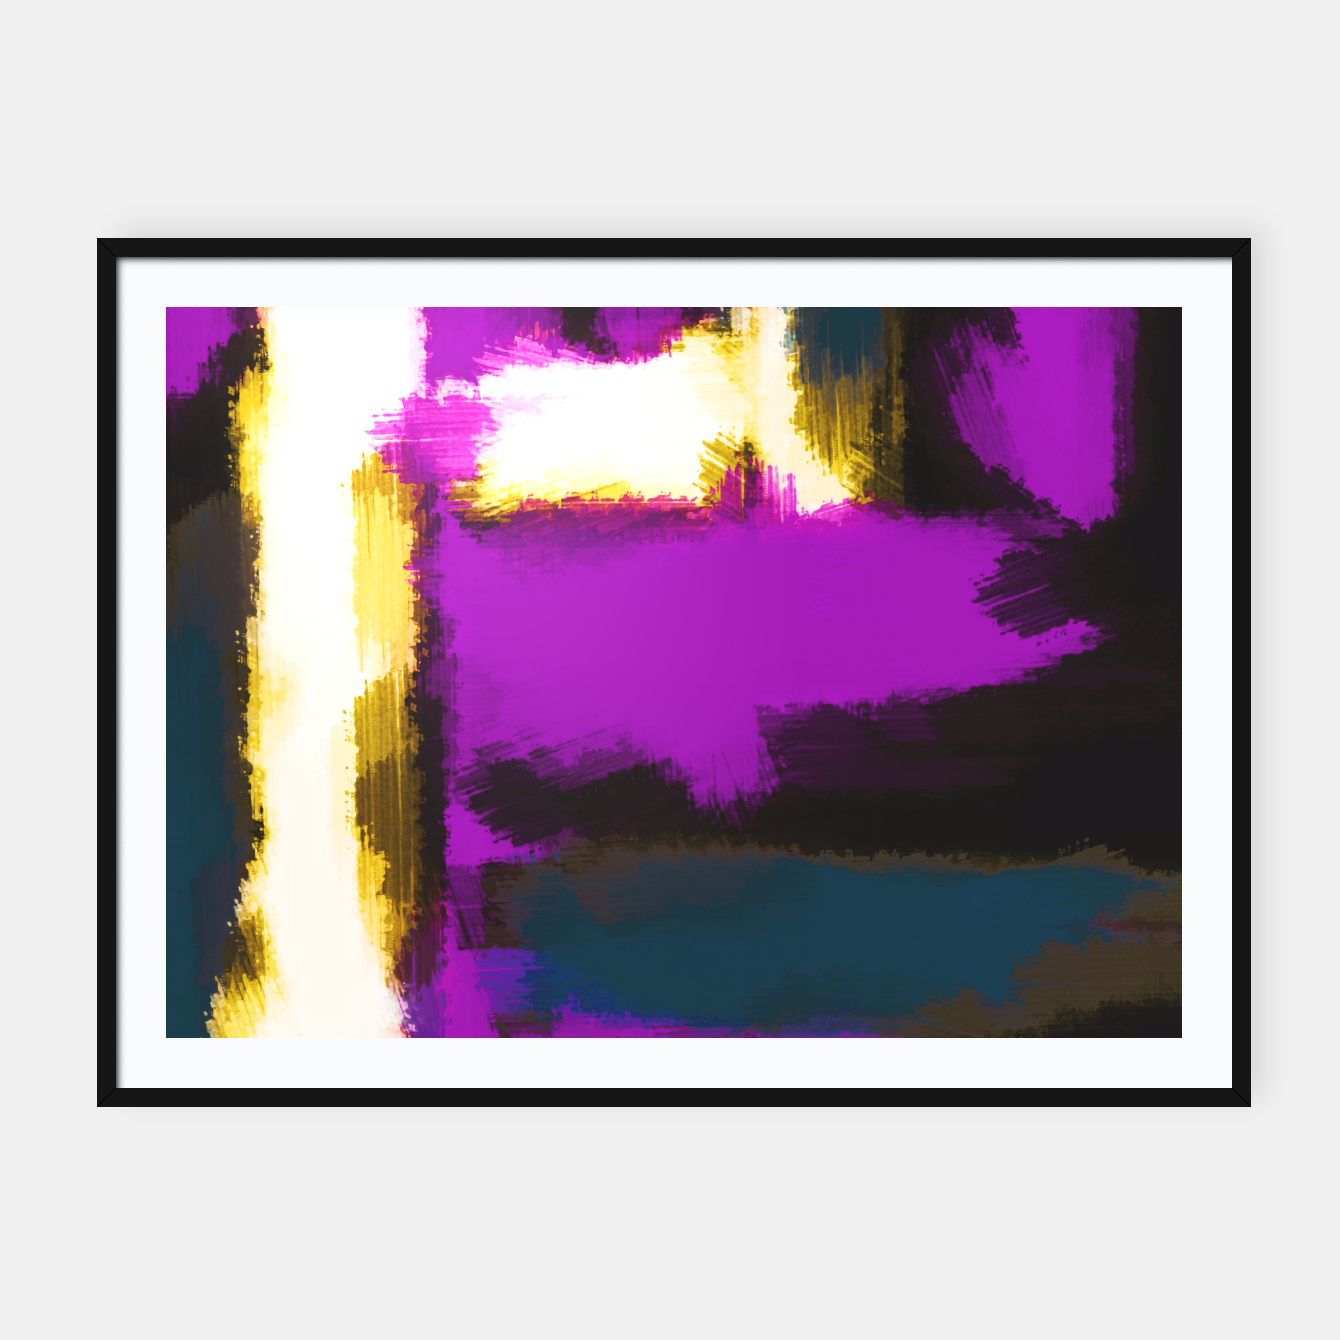 purple blue white and black abstract painting Framed poster